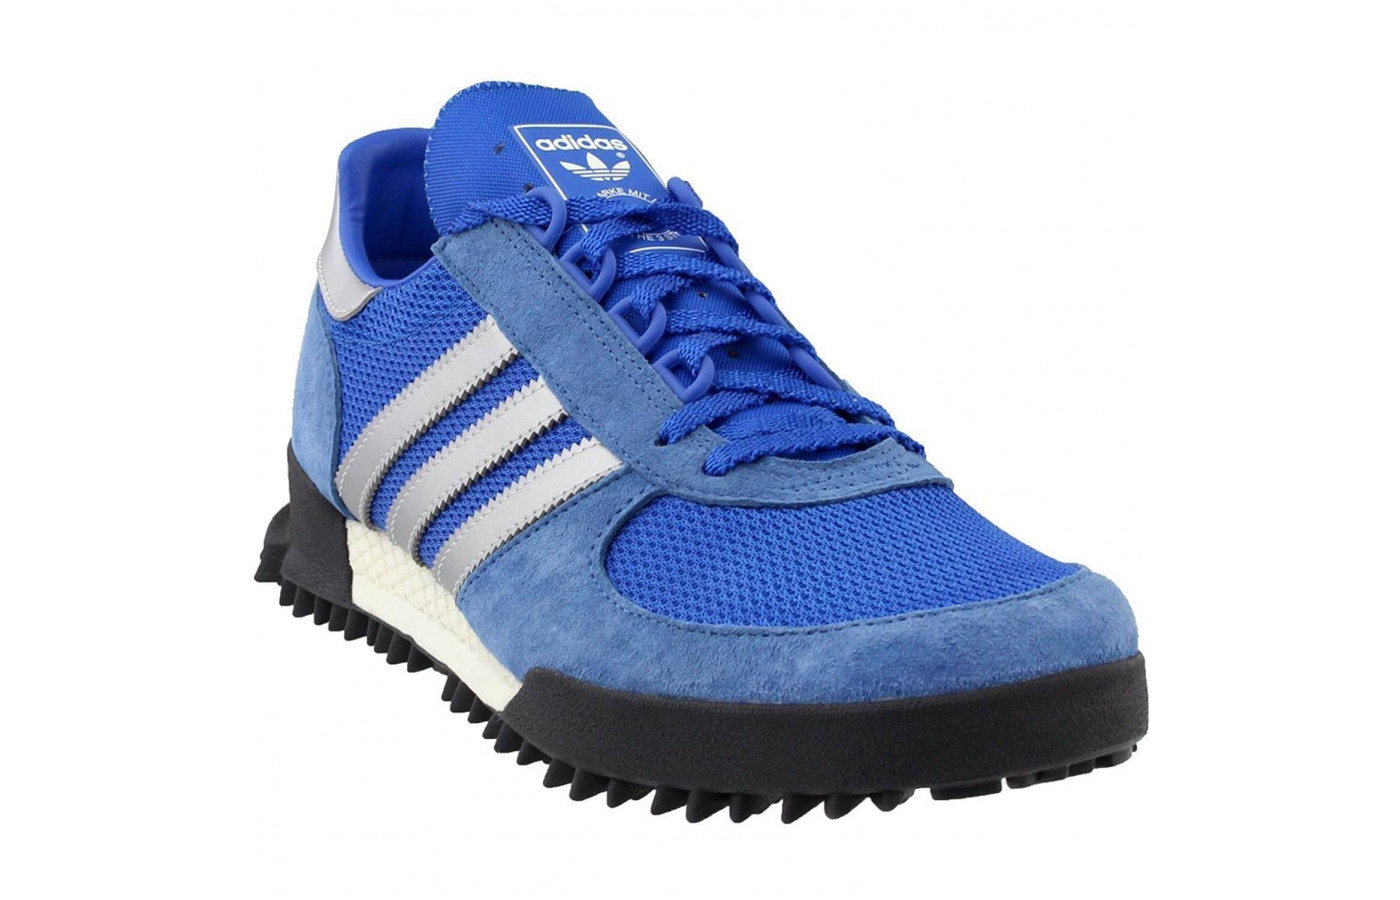 Adidas Marathon TR comes in royal blue and base green